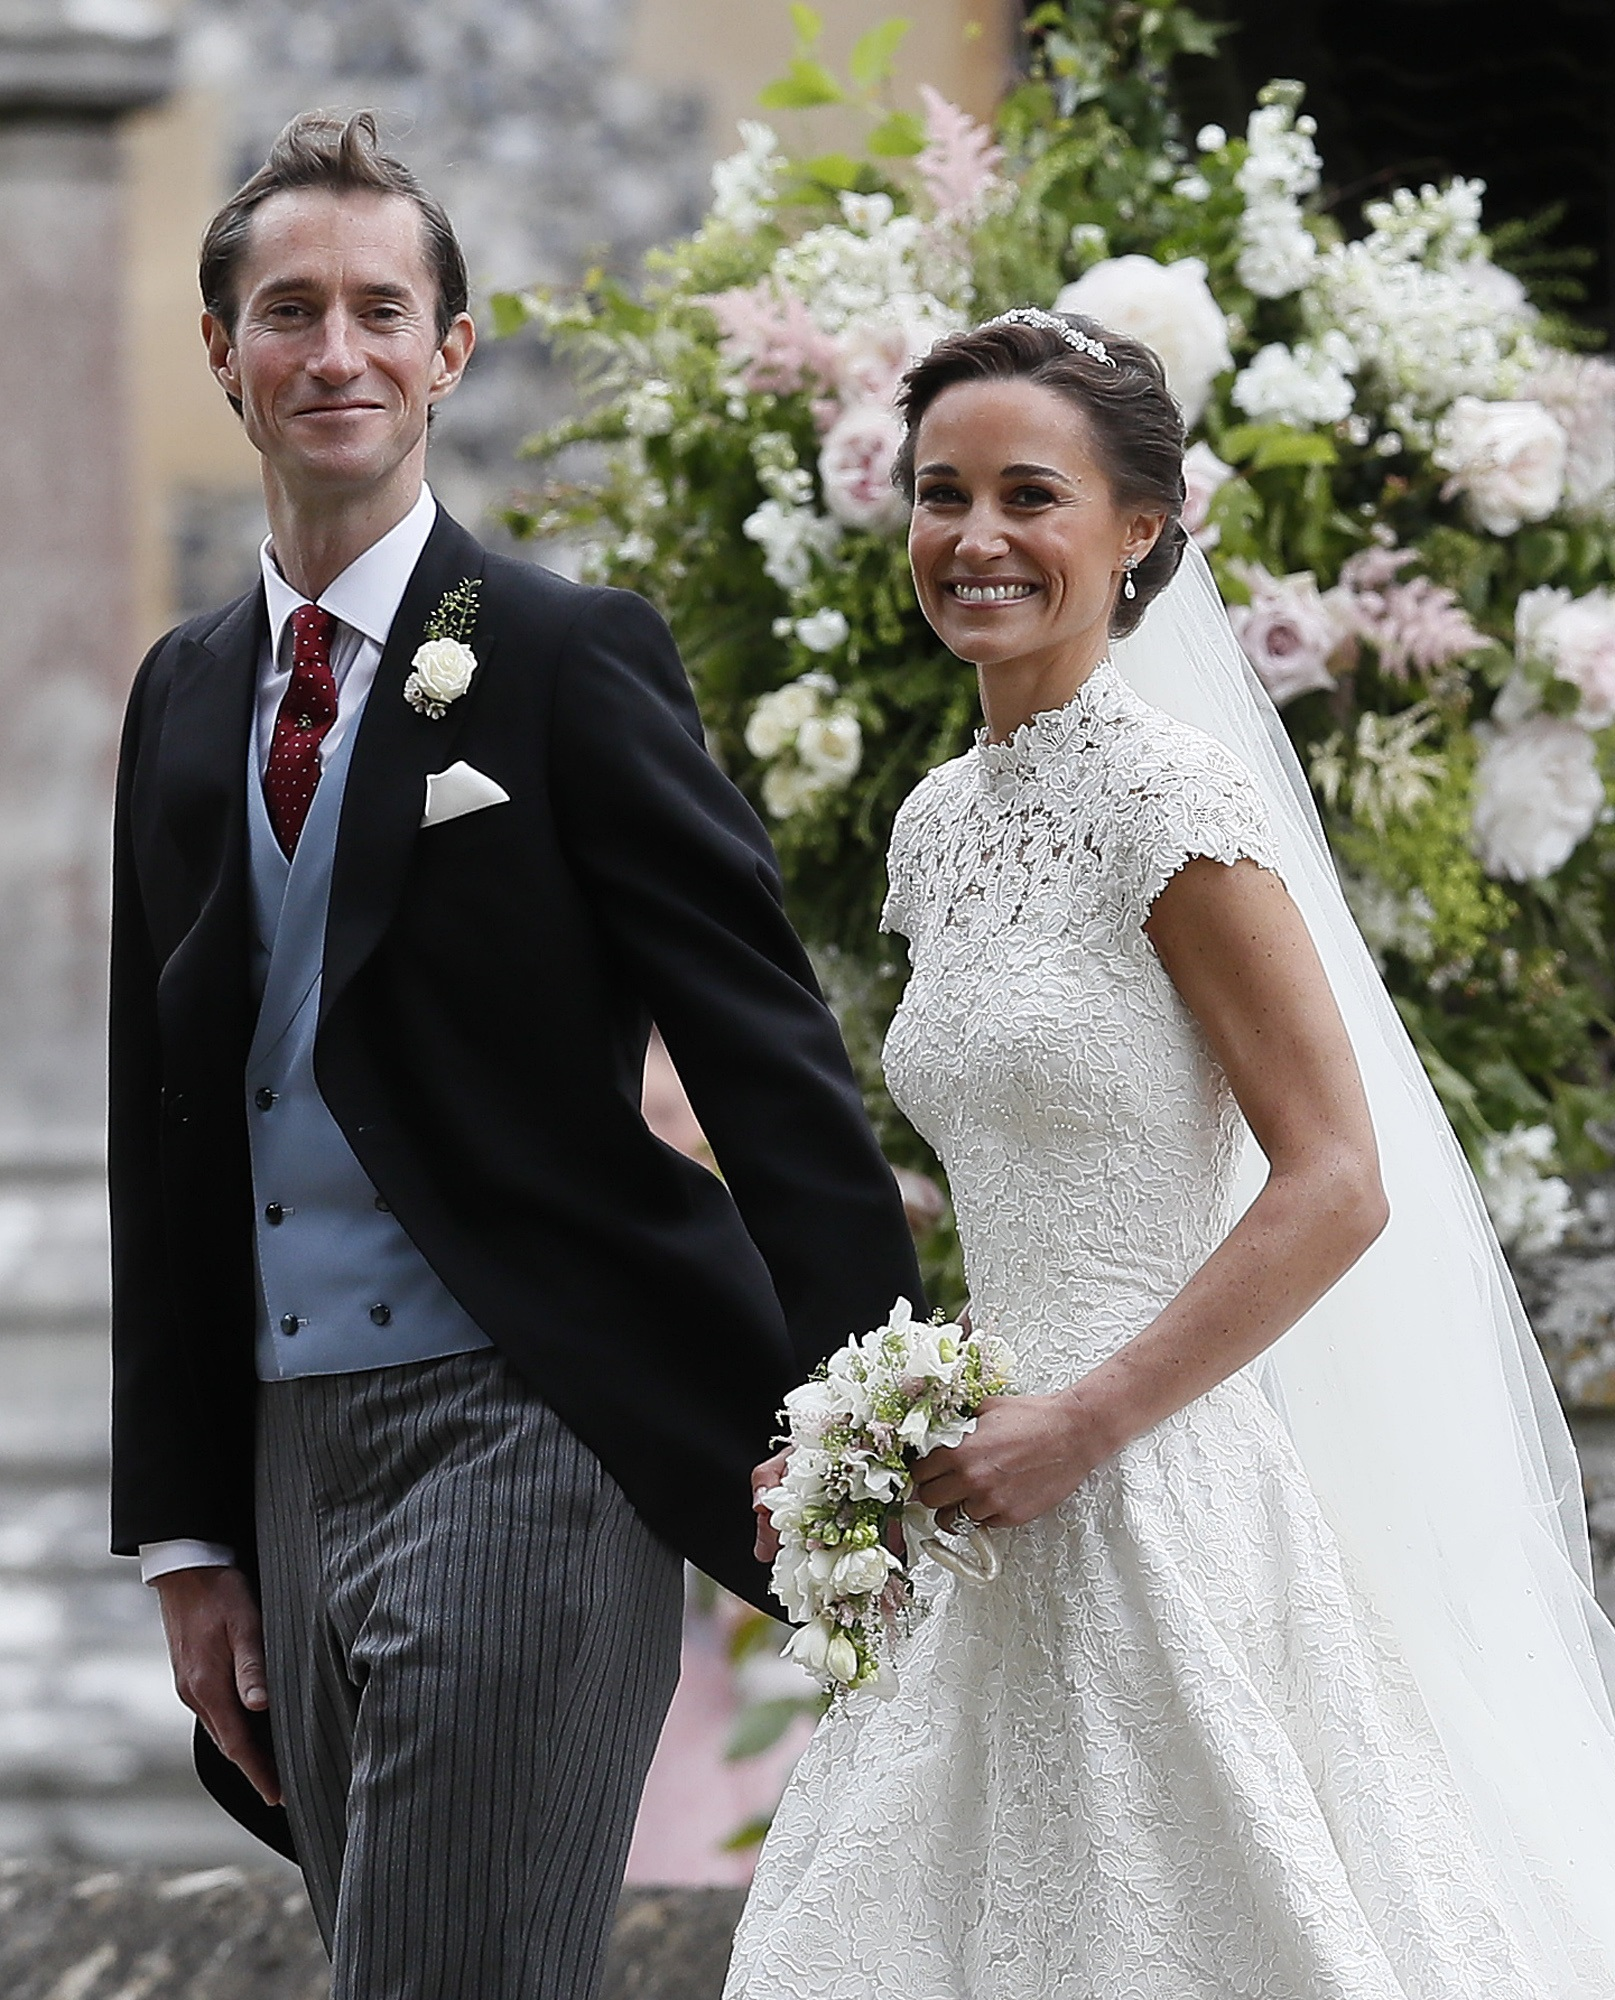 Pippa Middleton y James Matthews caminan tomados de la mano tras su boda. (Justin Tallis/Pool Photo via AP)